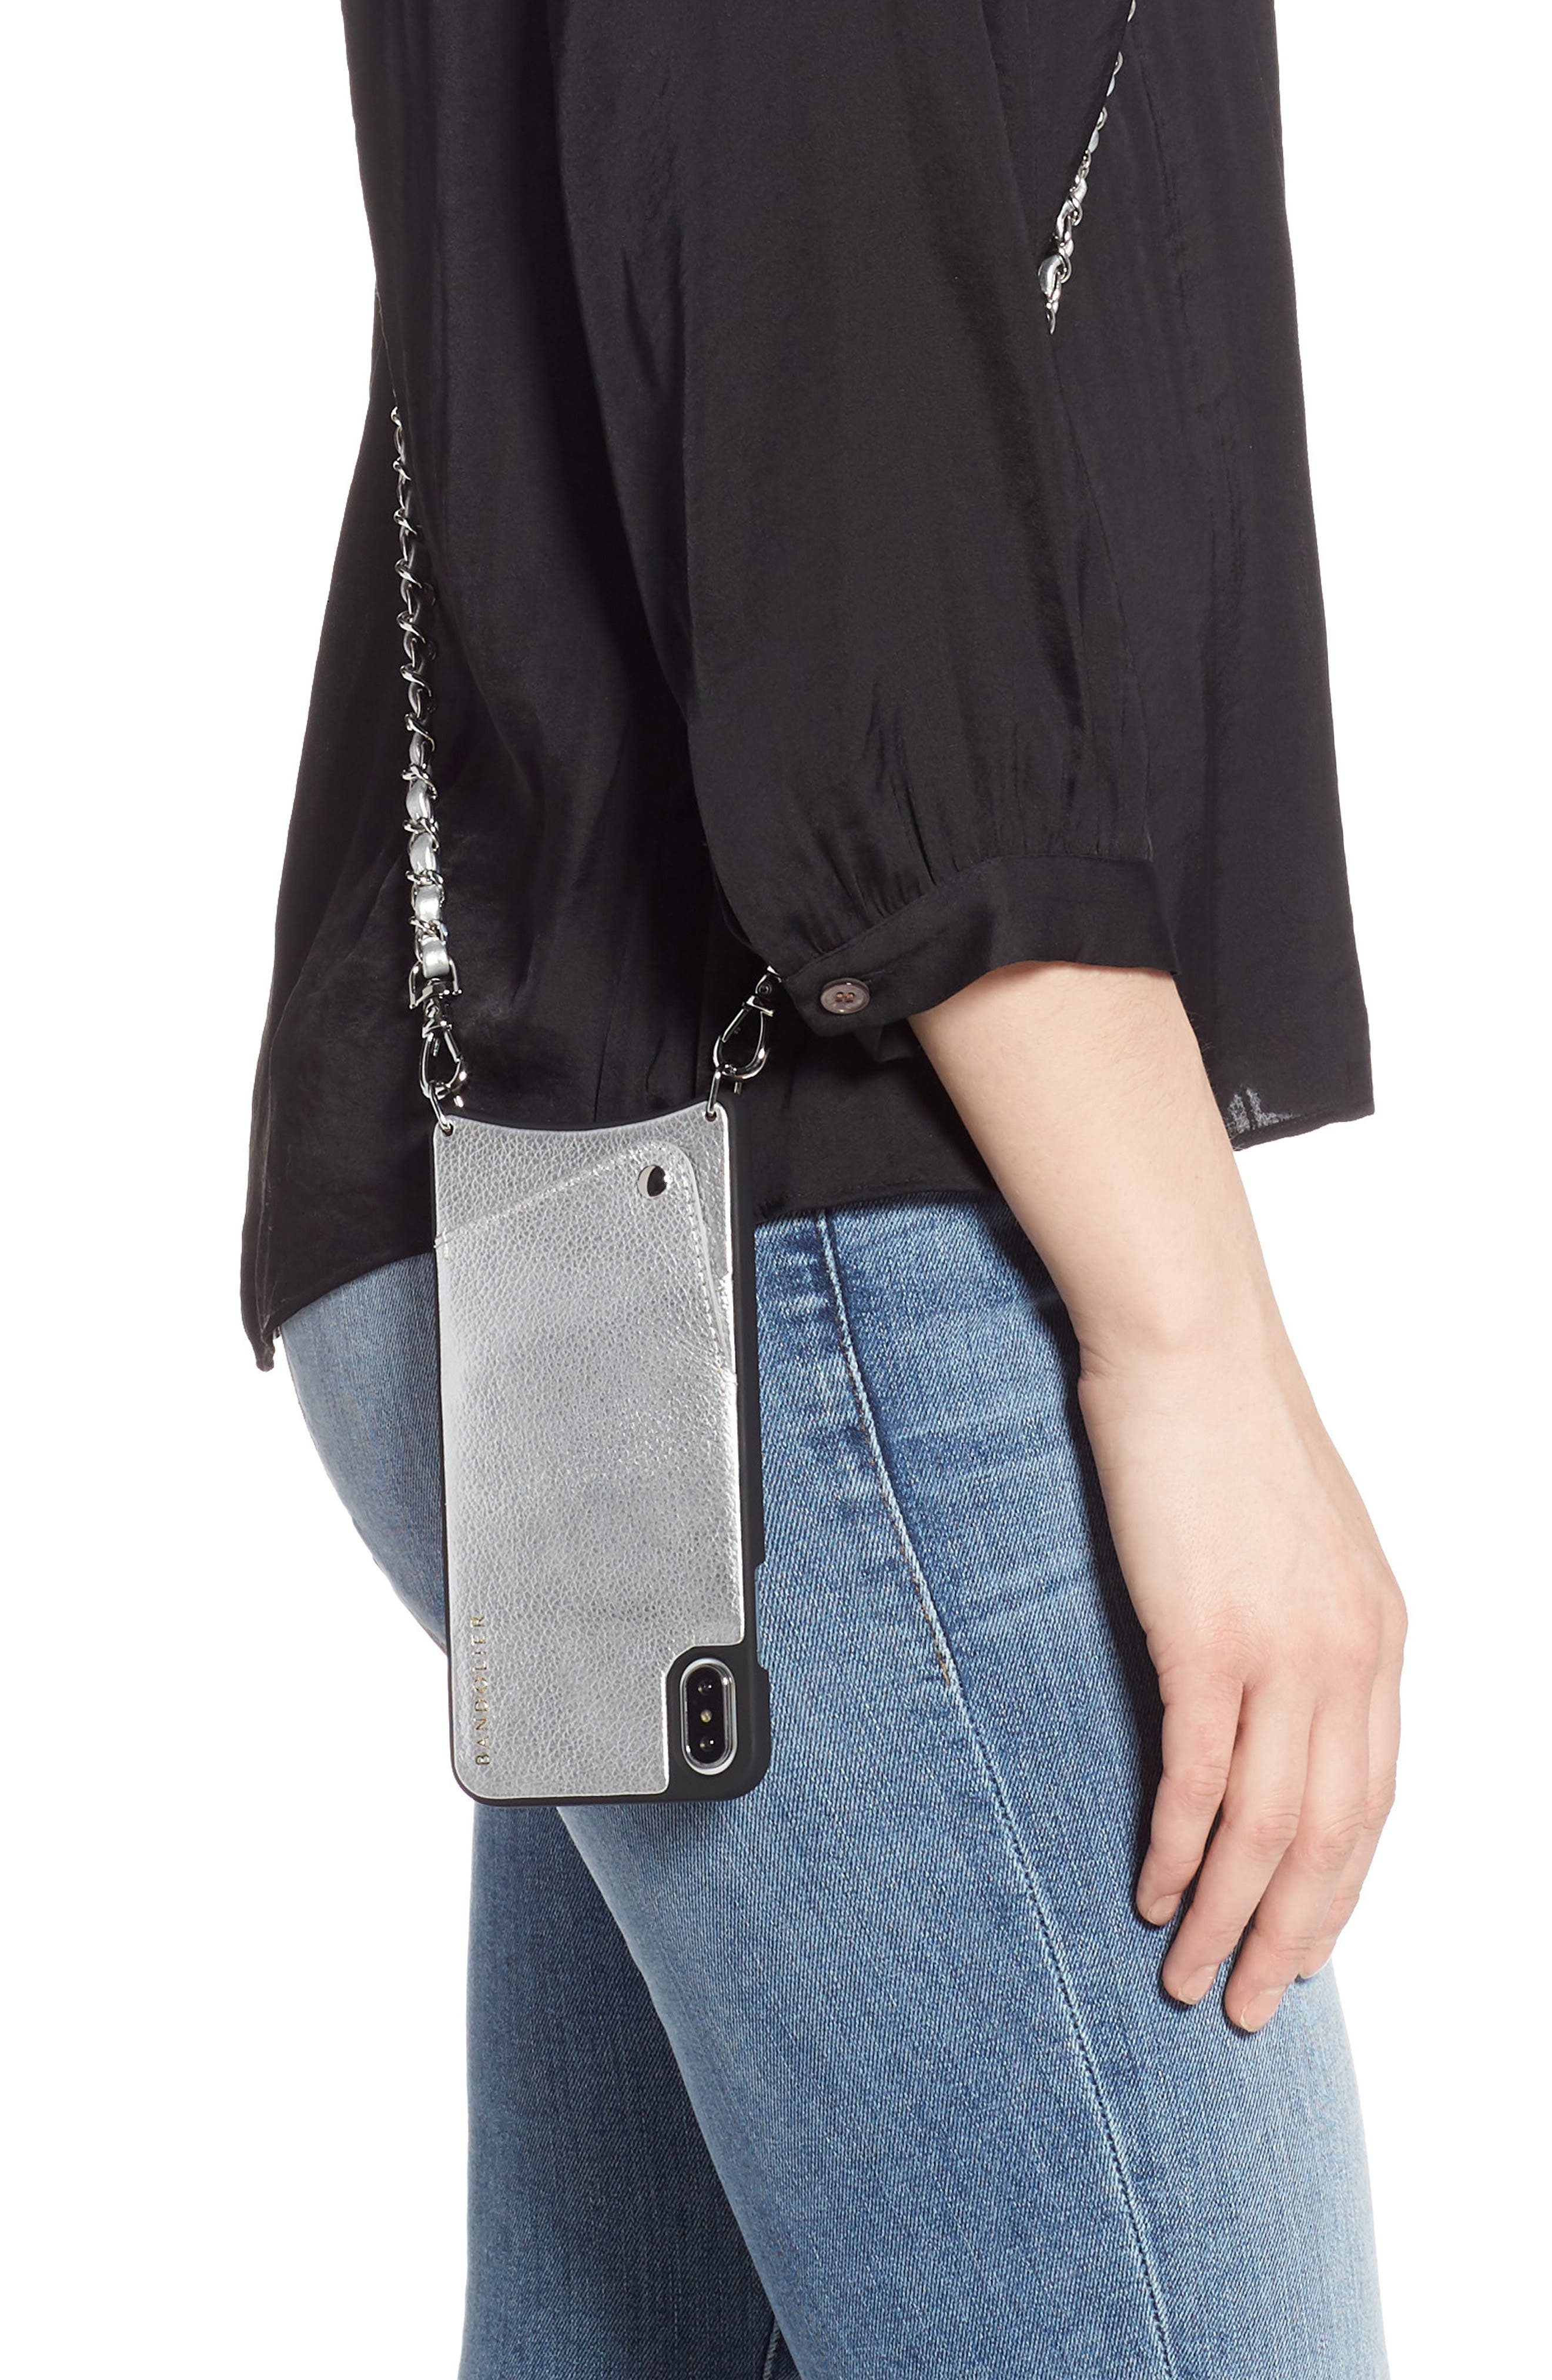 BANDOLIER, Sarah Leather iPhone 8/8 Plus/X/Xs/Xs Max & XR Crossbody Case, Alternate thumbnail 2, color, SILVER/ SILVER